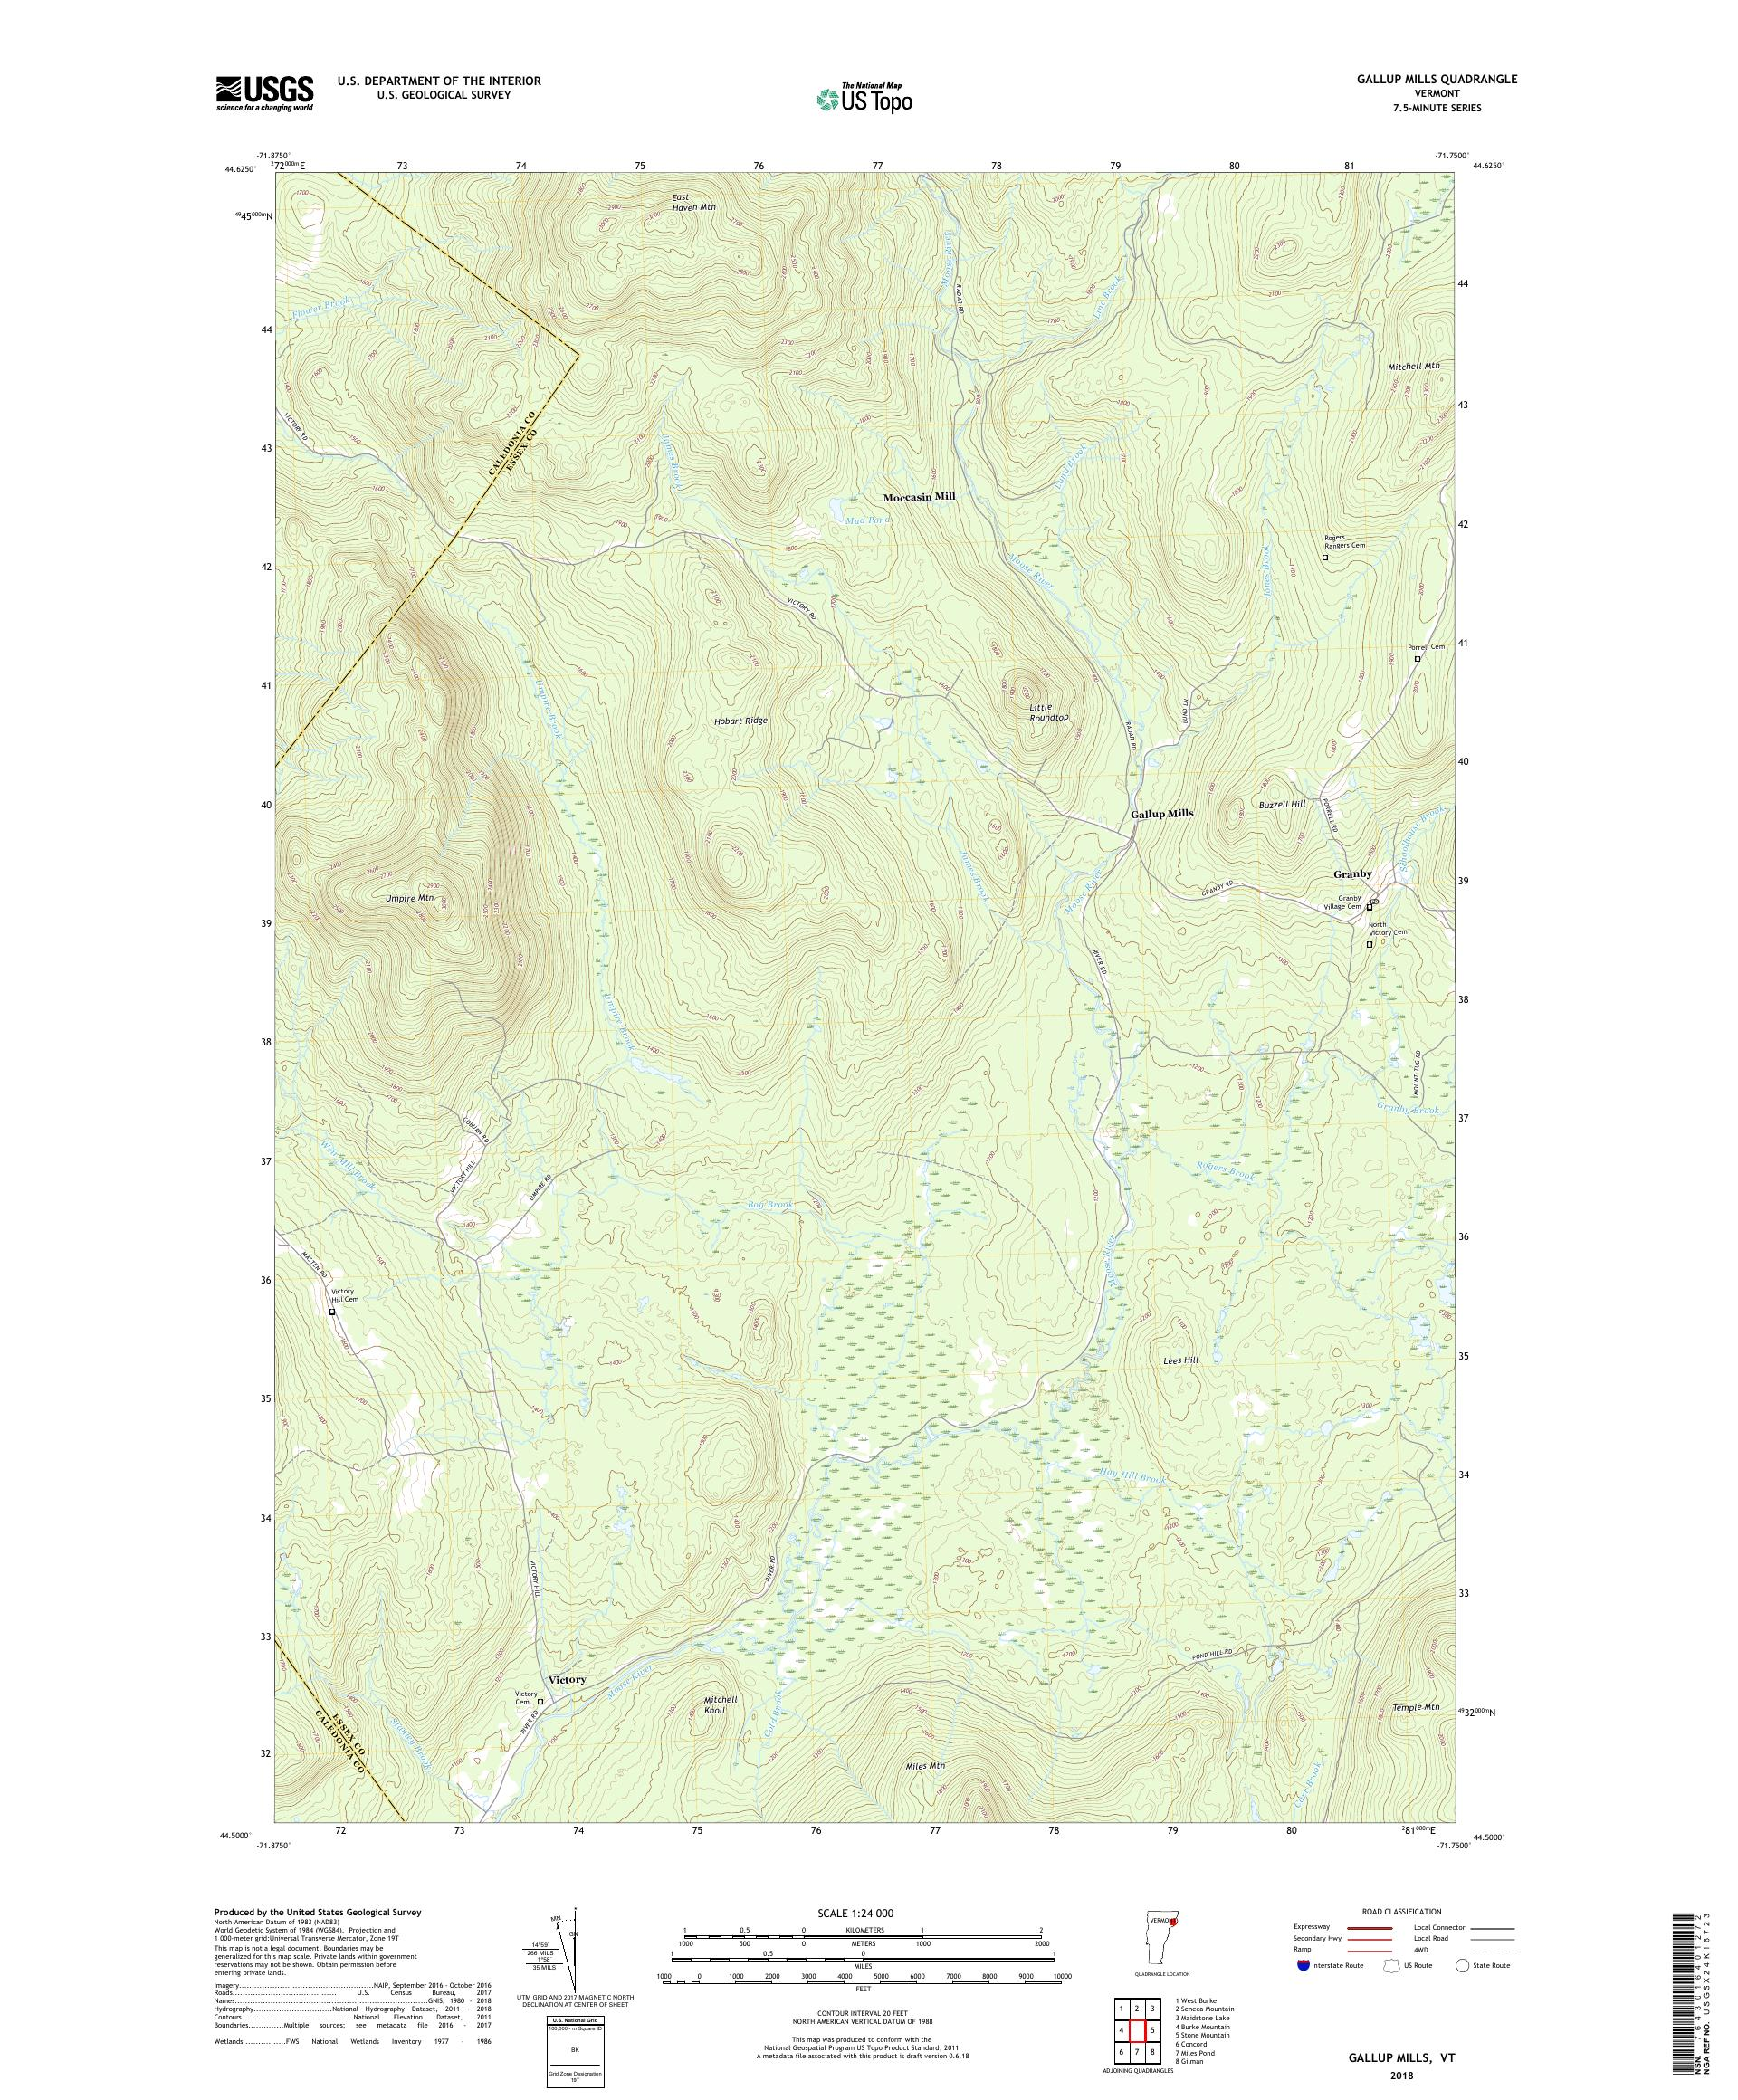 Mytopo Gallup Mills Vermont Usgs Quad Topo Map - Map-of-us-paper-mills